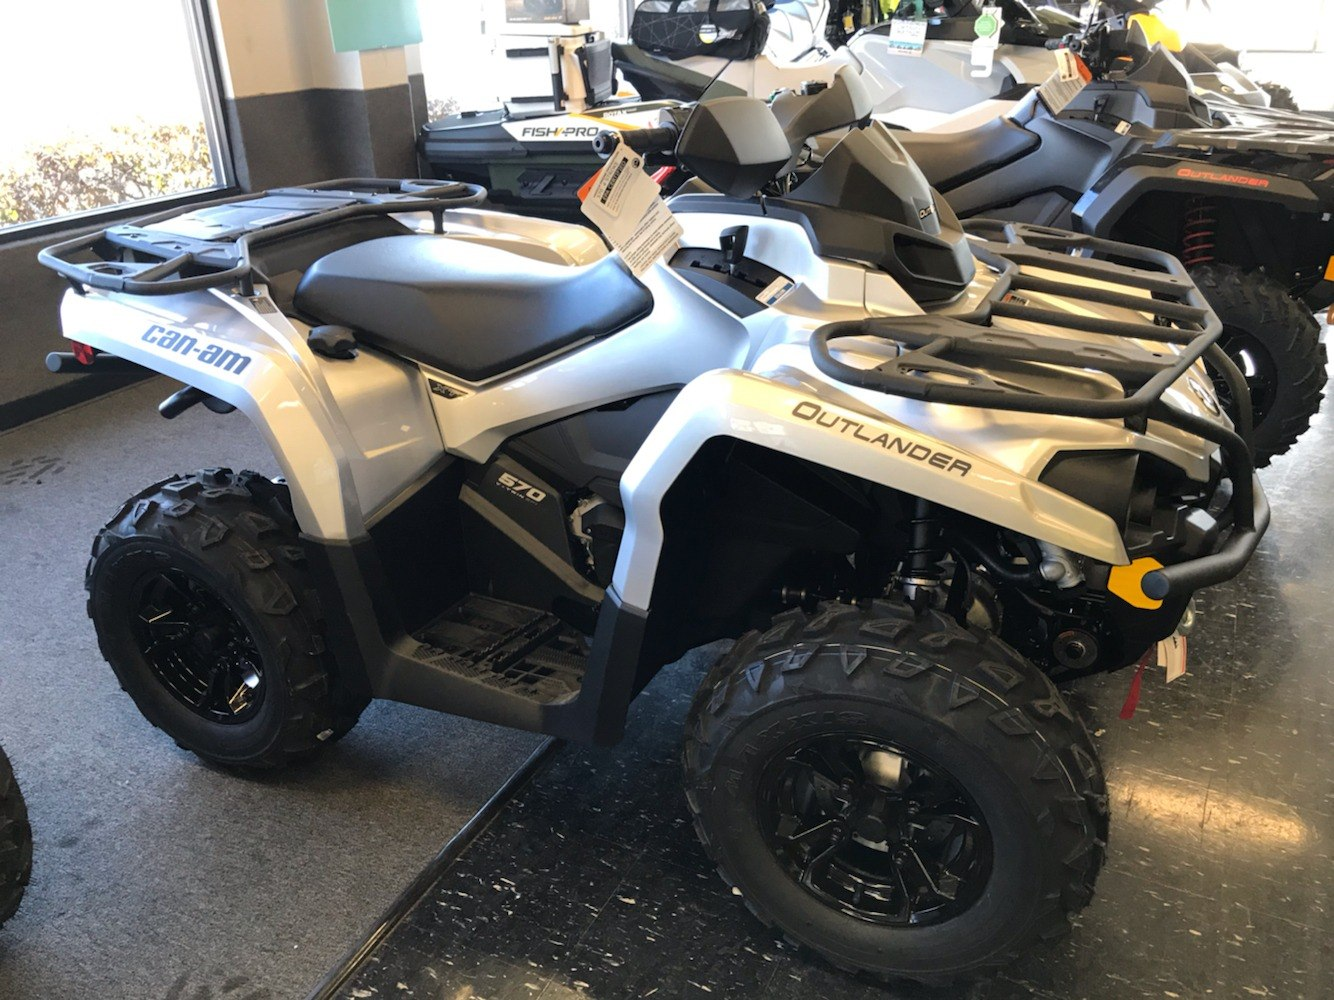 2020 Can-Am Outlander XT 570 in Cohoes, New York - Photo 2